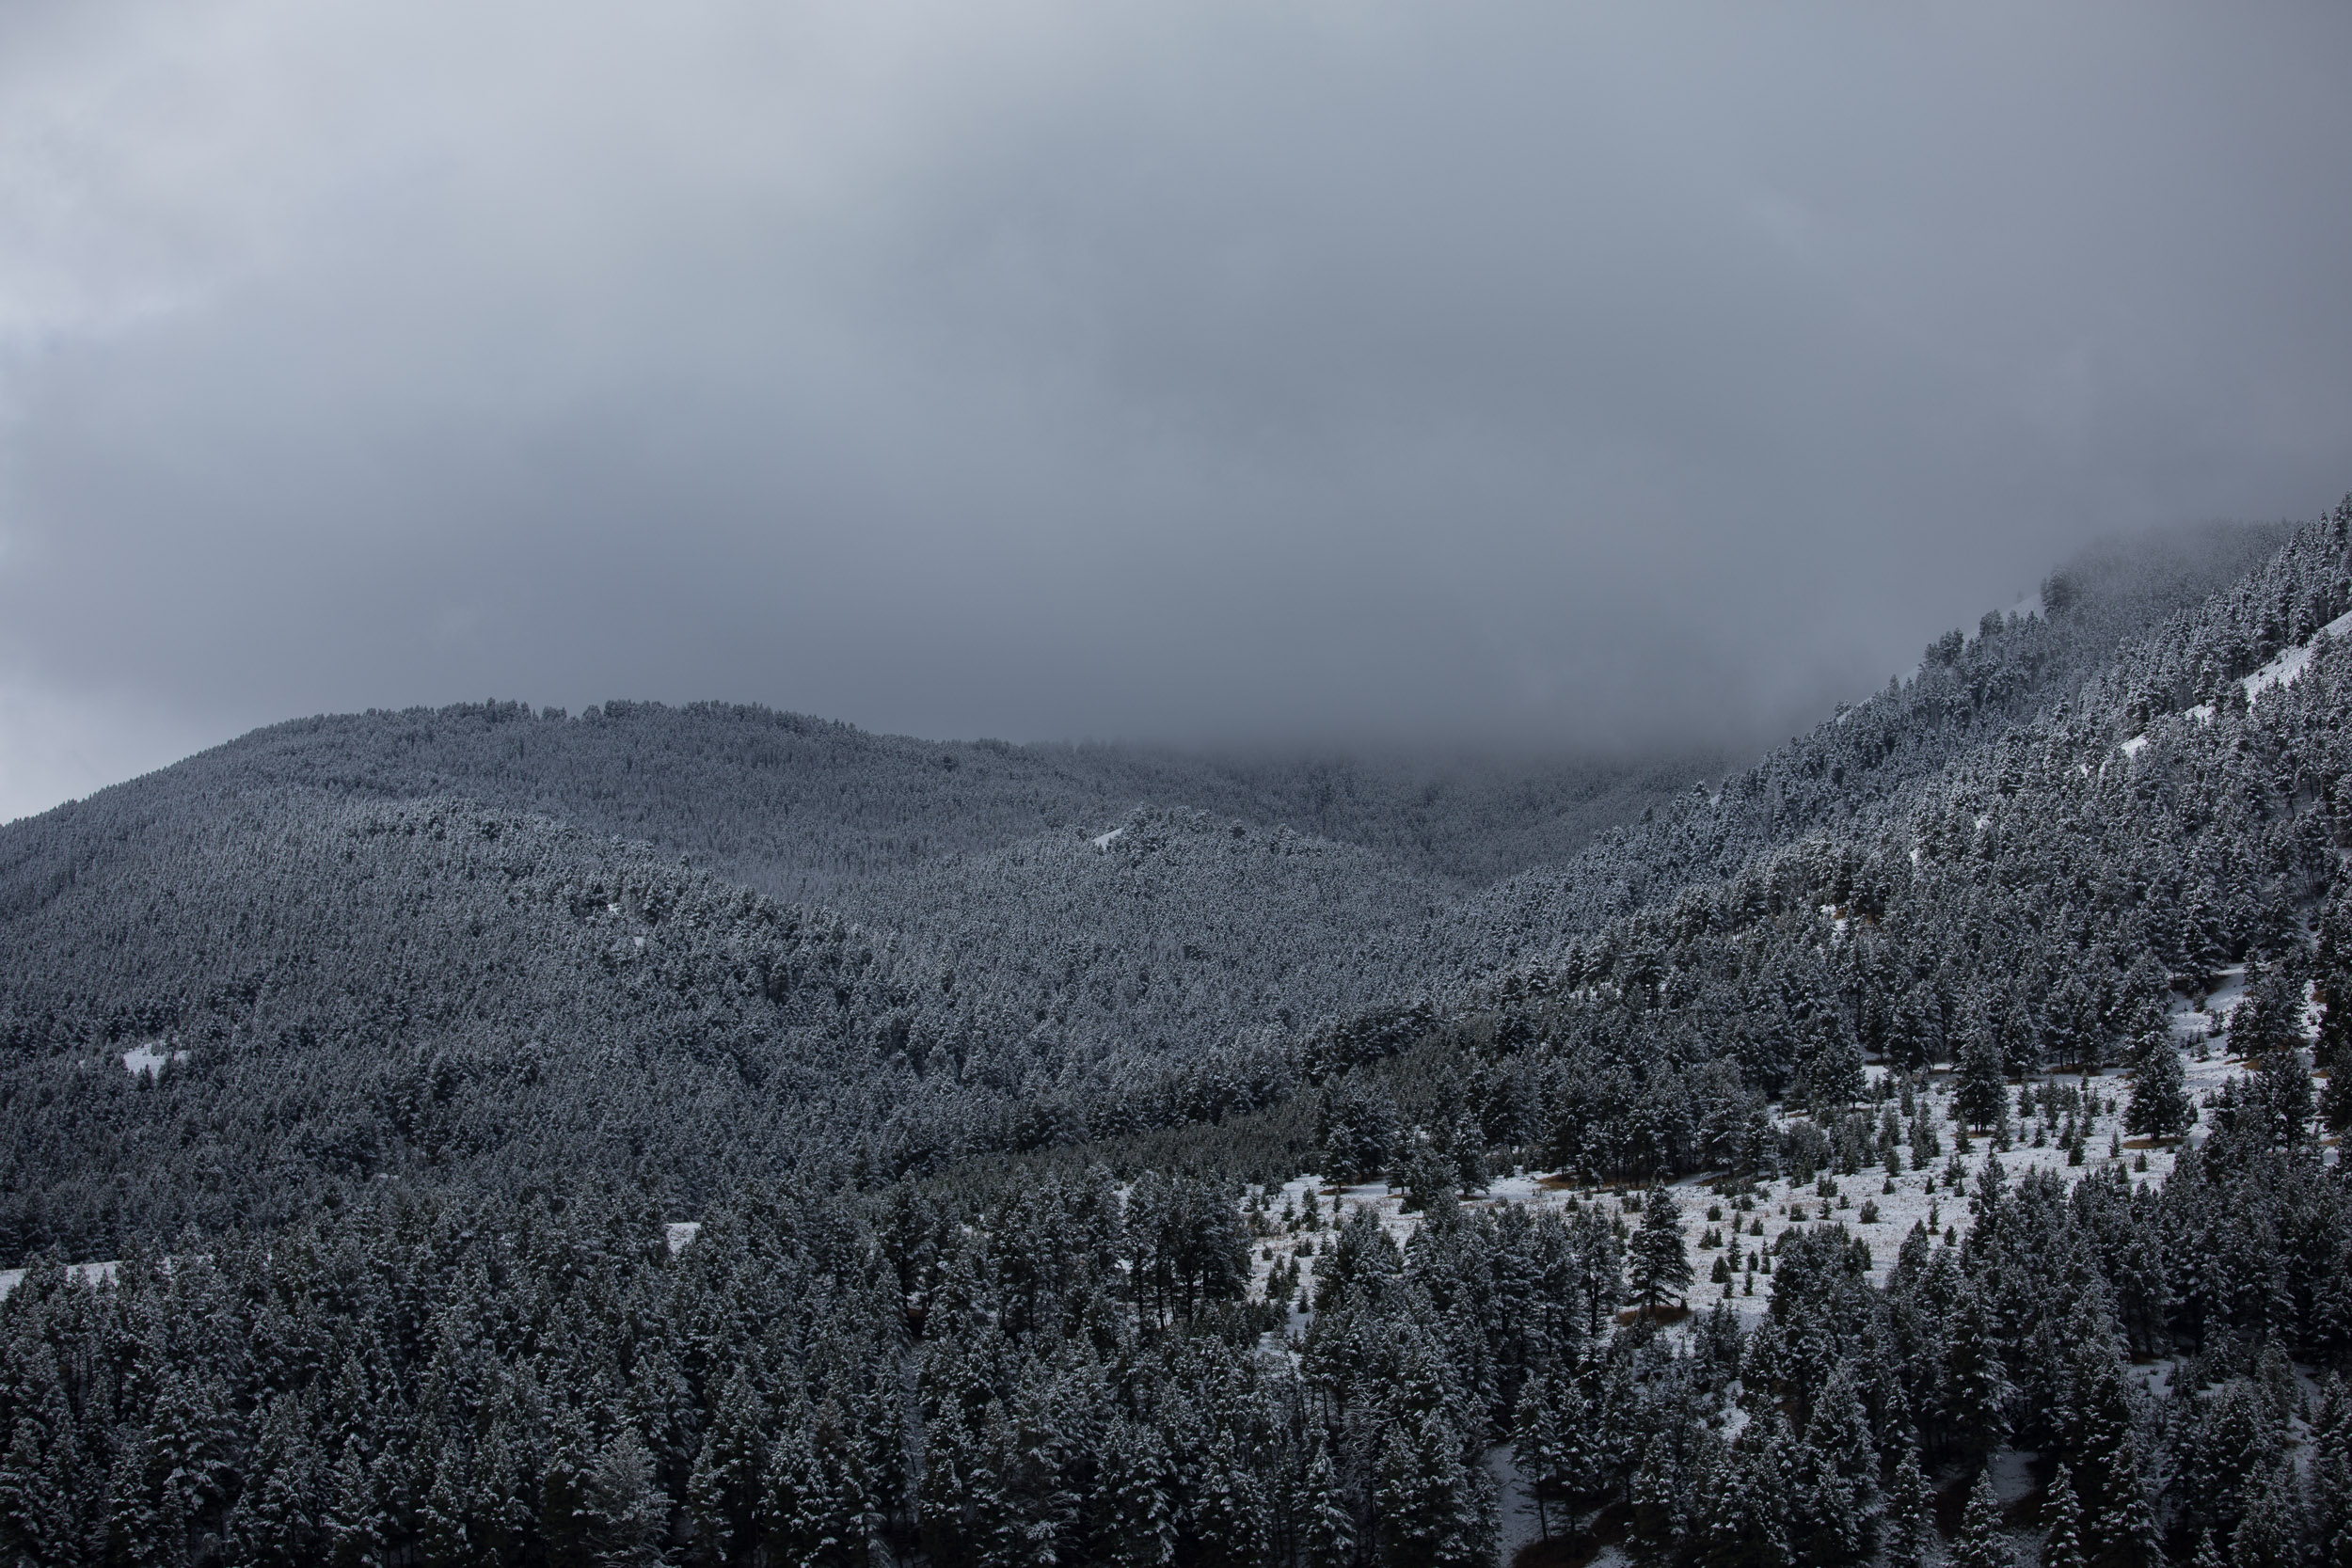 Snow covered mountains, low clouds